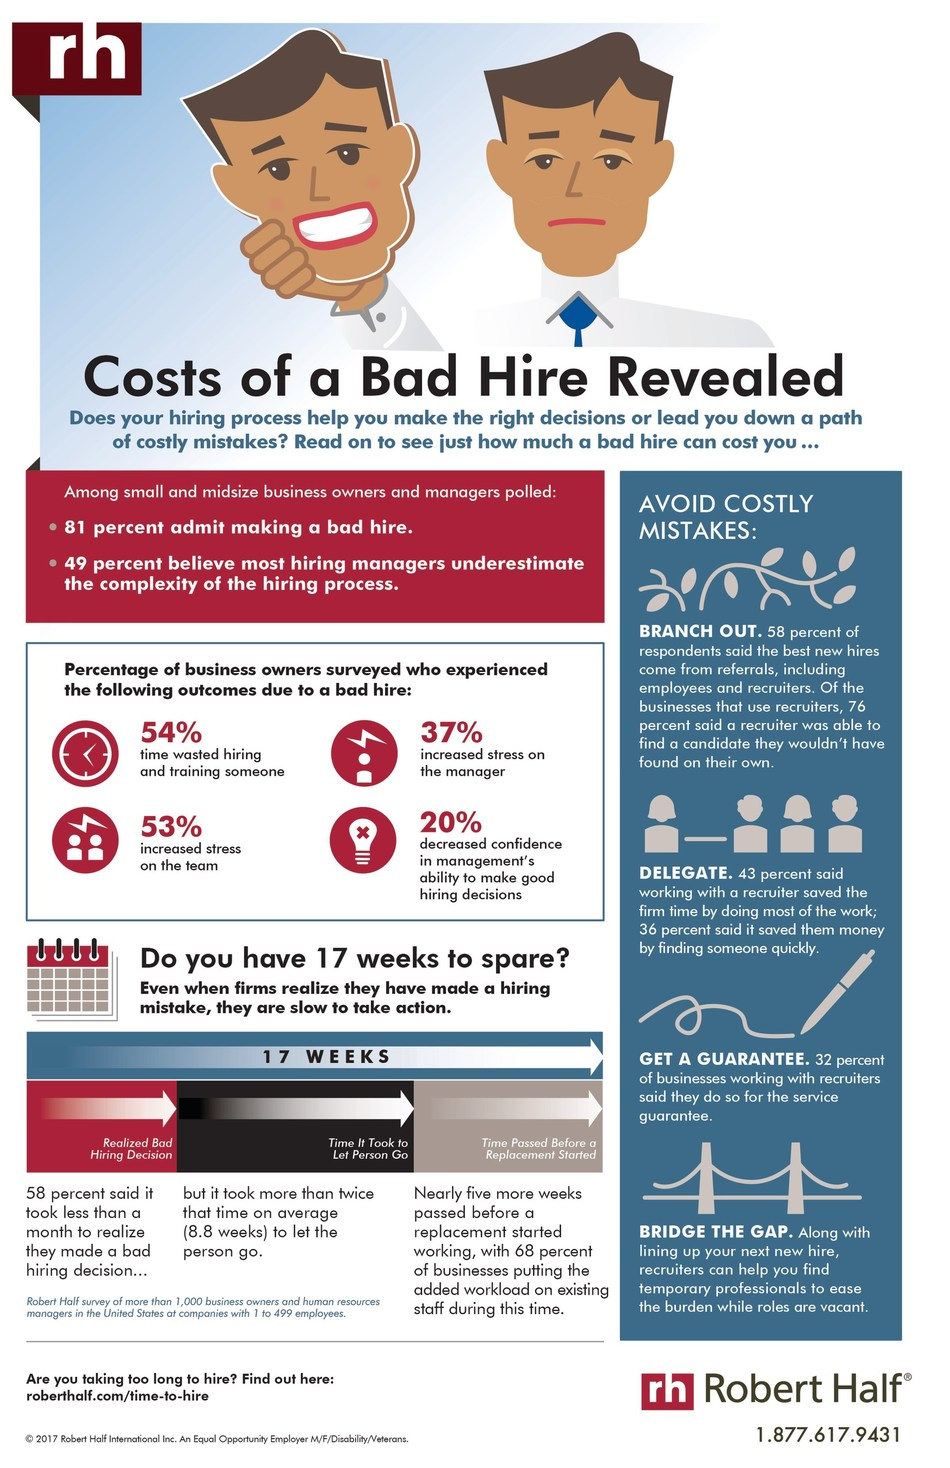 New research from Robert Half reveals some of the effects of a bad hire, based on a survey of small and midsize businesses.